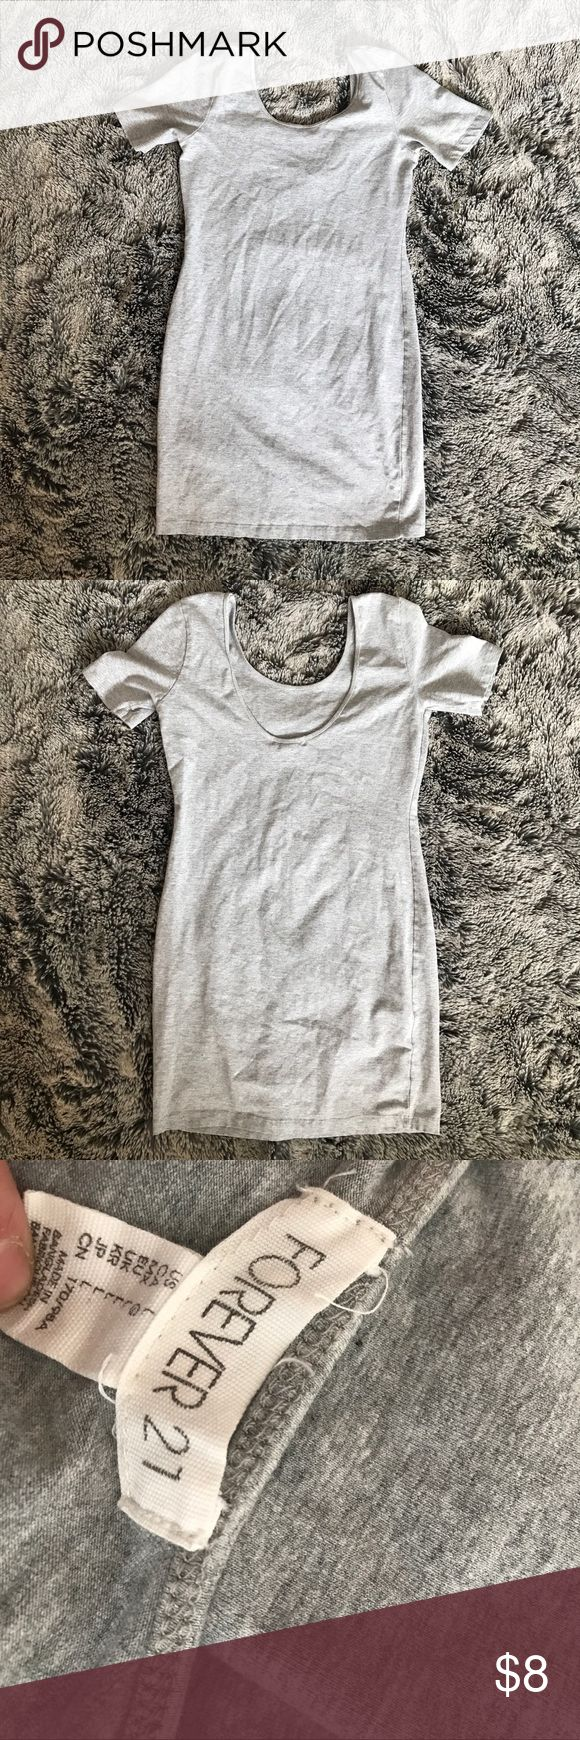 Plain grey Bodycon Dress This is a staple altering piece for fall! It has a plunging back, super cute! Simple and in excellent used condition, no major flaws. Forever 21 Dresses Mini